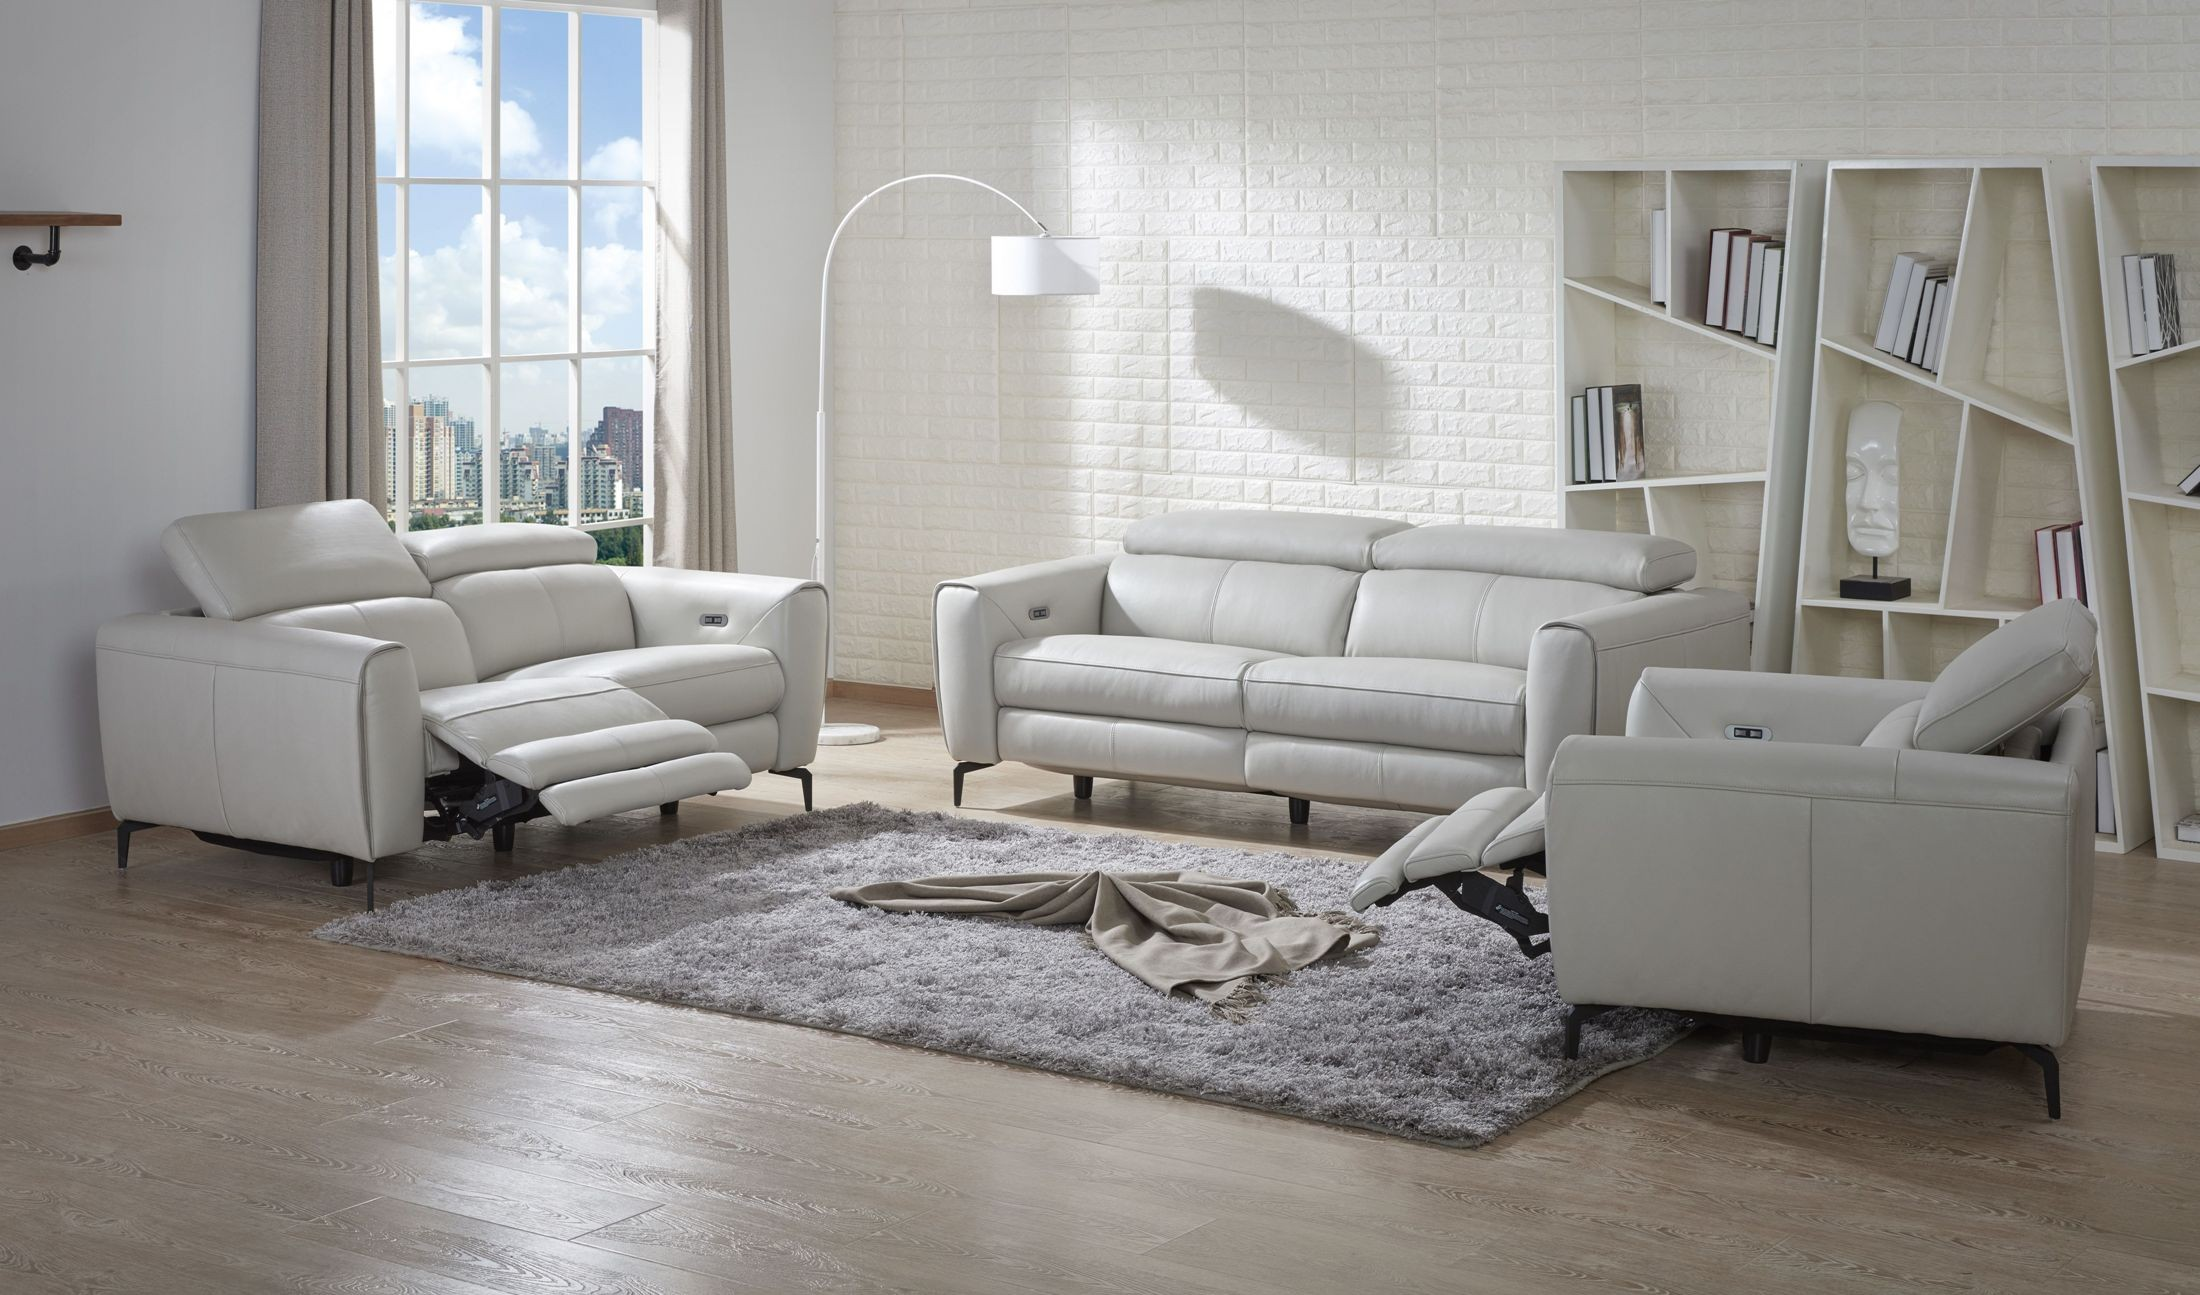 Lorenzo light grey leather reclining living room set from for Lorenzo living room furniture sets pieces